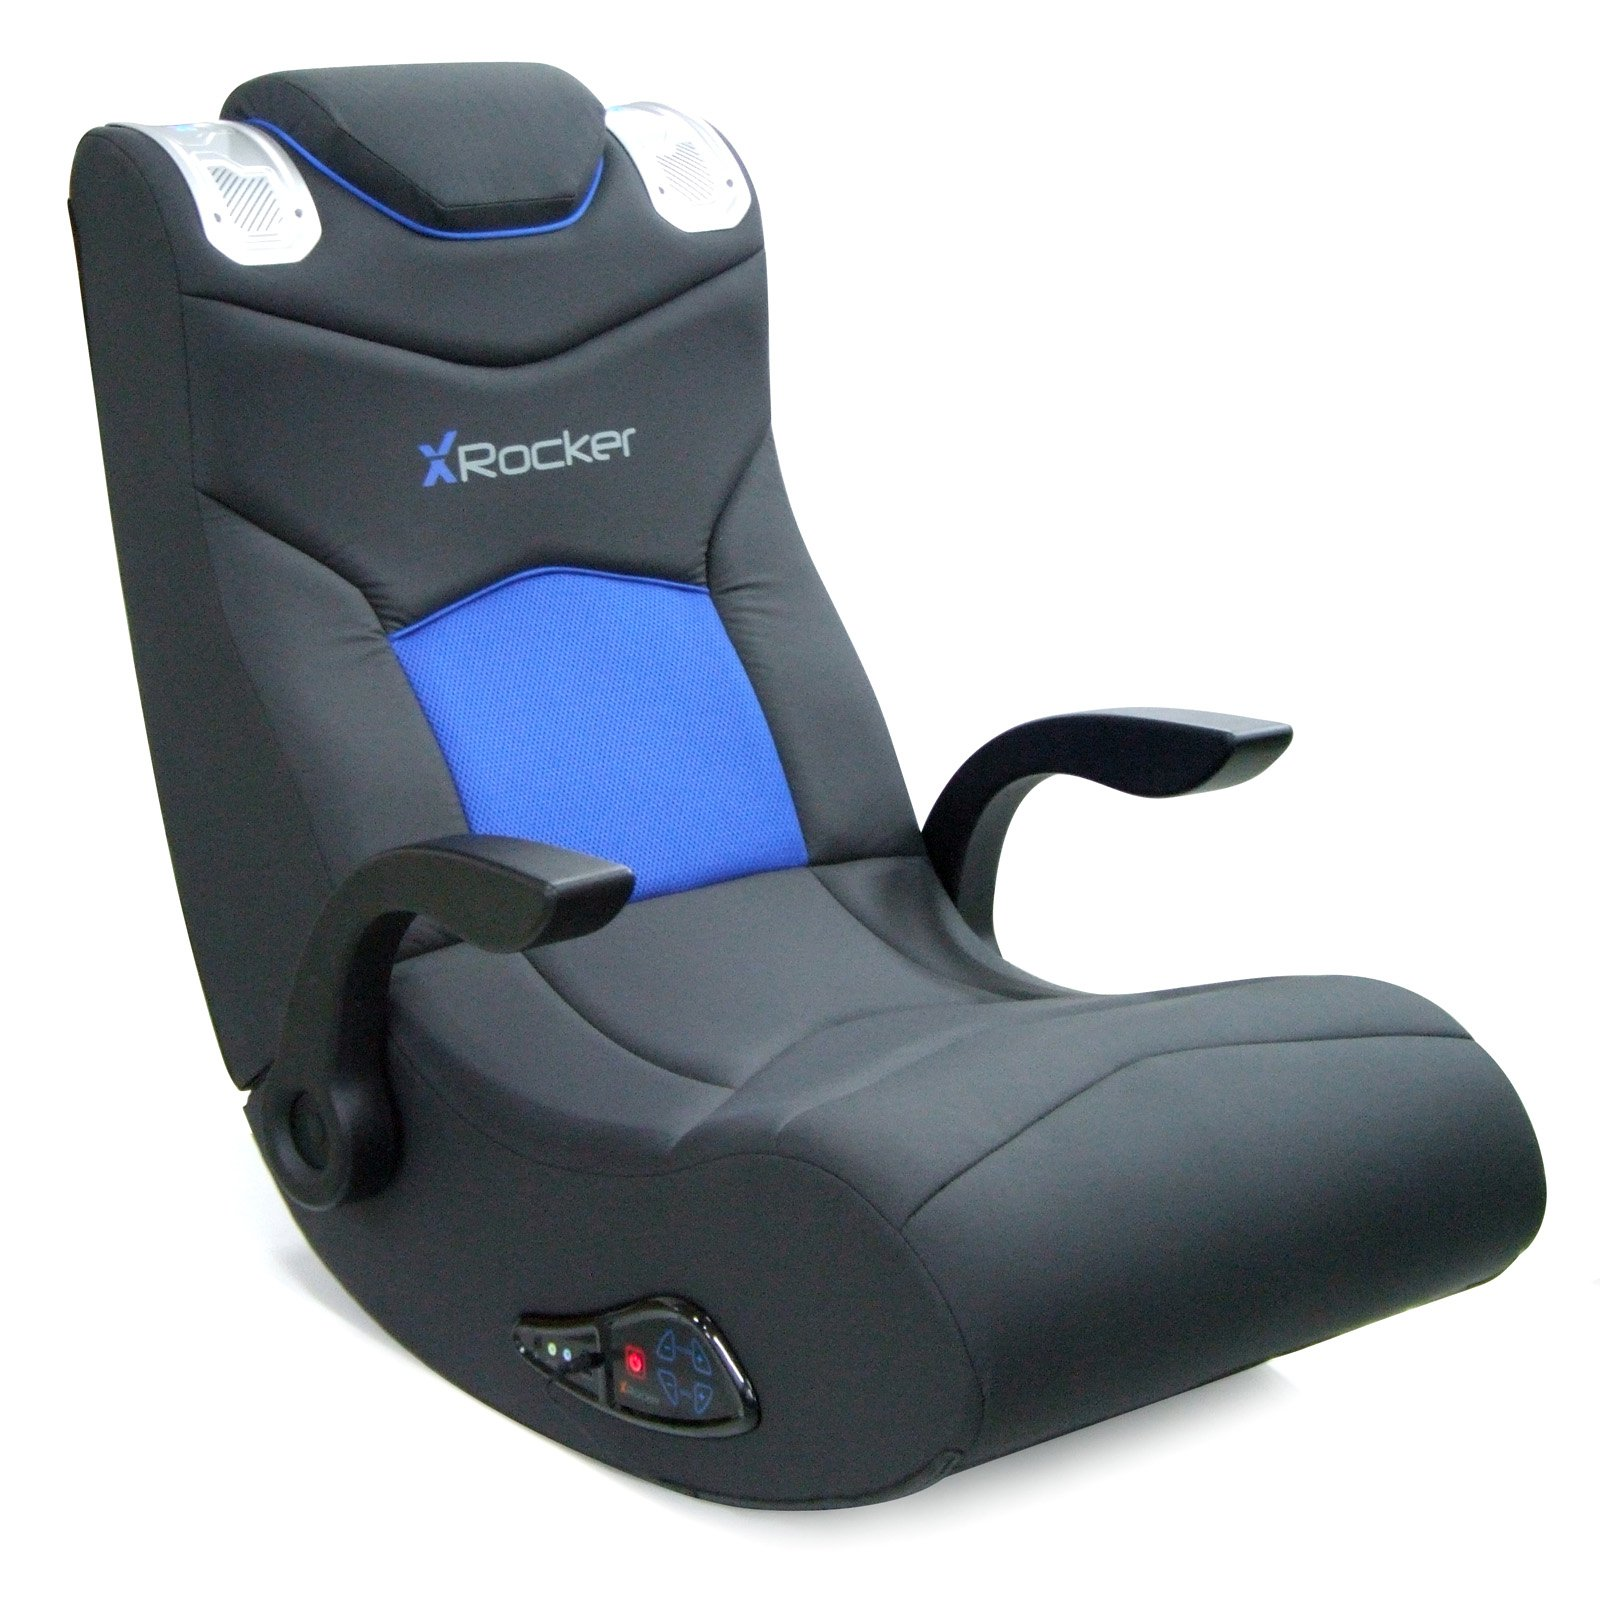 Game Chair Rocker X Rocker Ice Video Rocker Game Chair Walmart